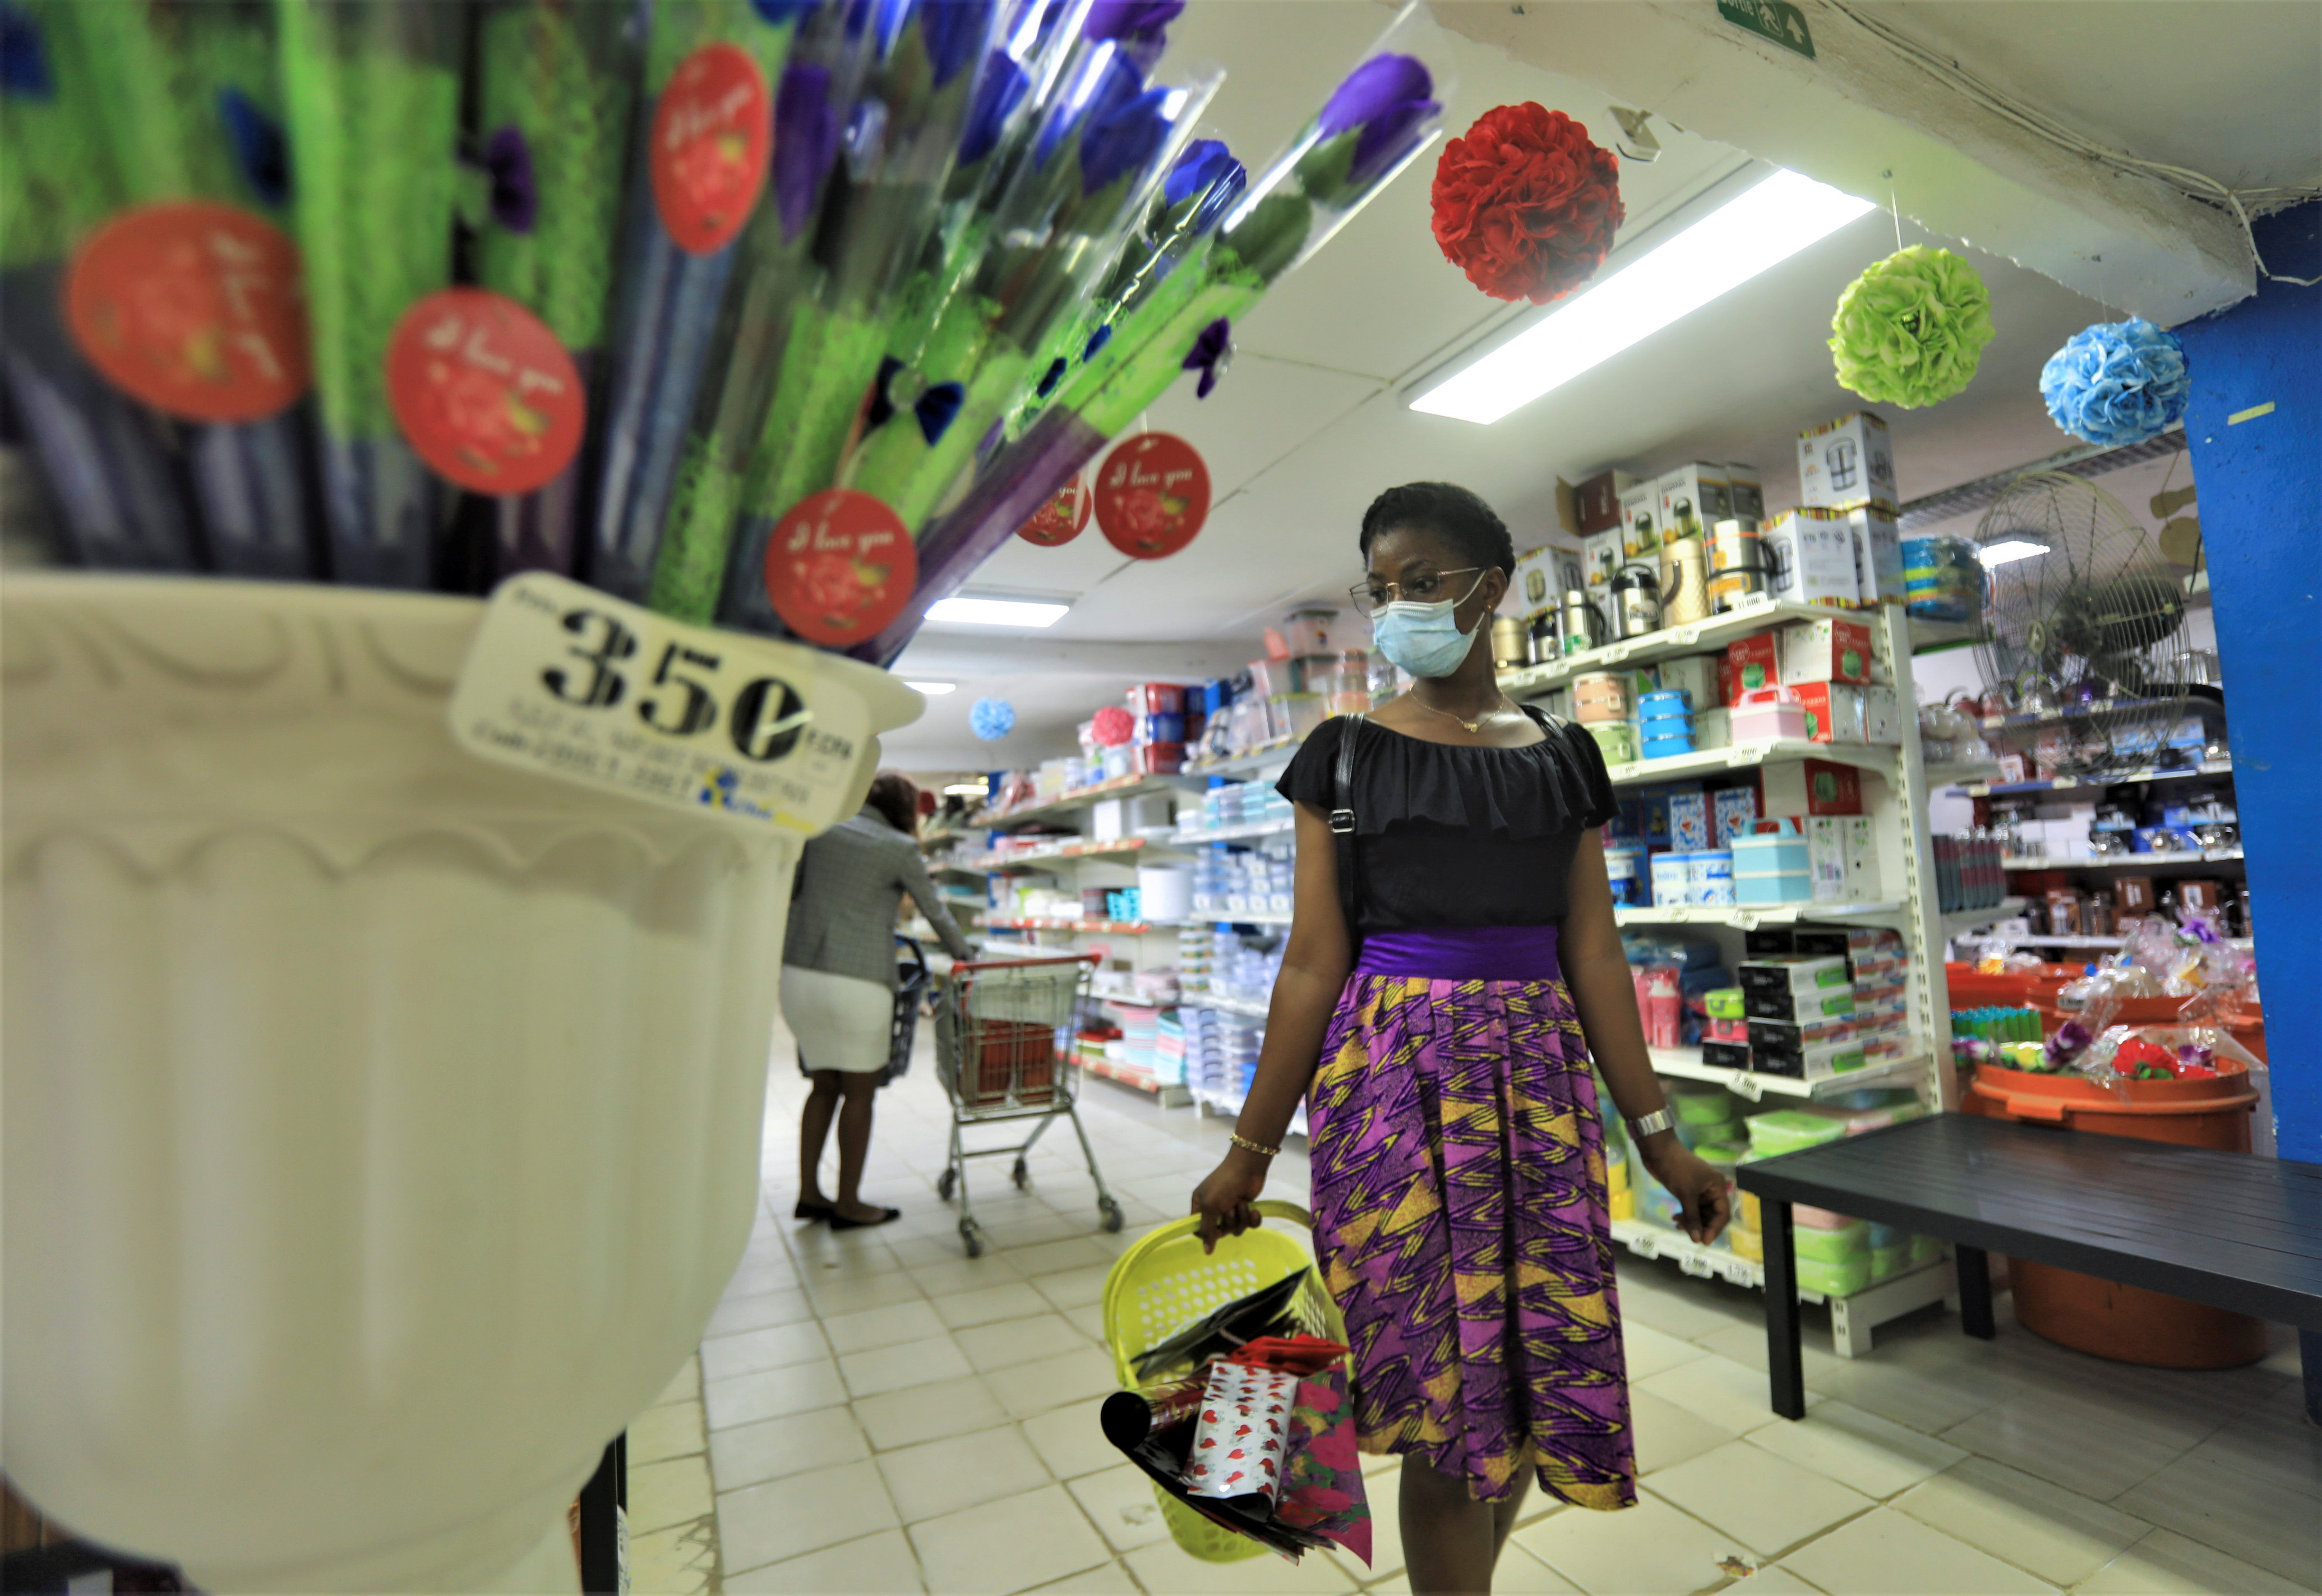 A woman wearing a protective face mask shops at Chic Shops supermarket, amid the coronavirus disease (COVID-19) outbreak at Adjame, a neighbourhood of Abidjan, Ivory Coast May 28, 2020. REUTERS/Thierry Gouegnon